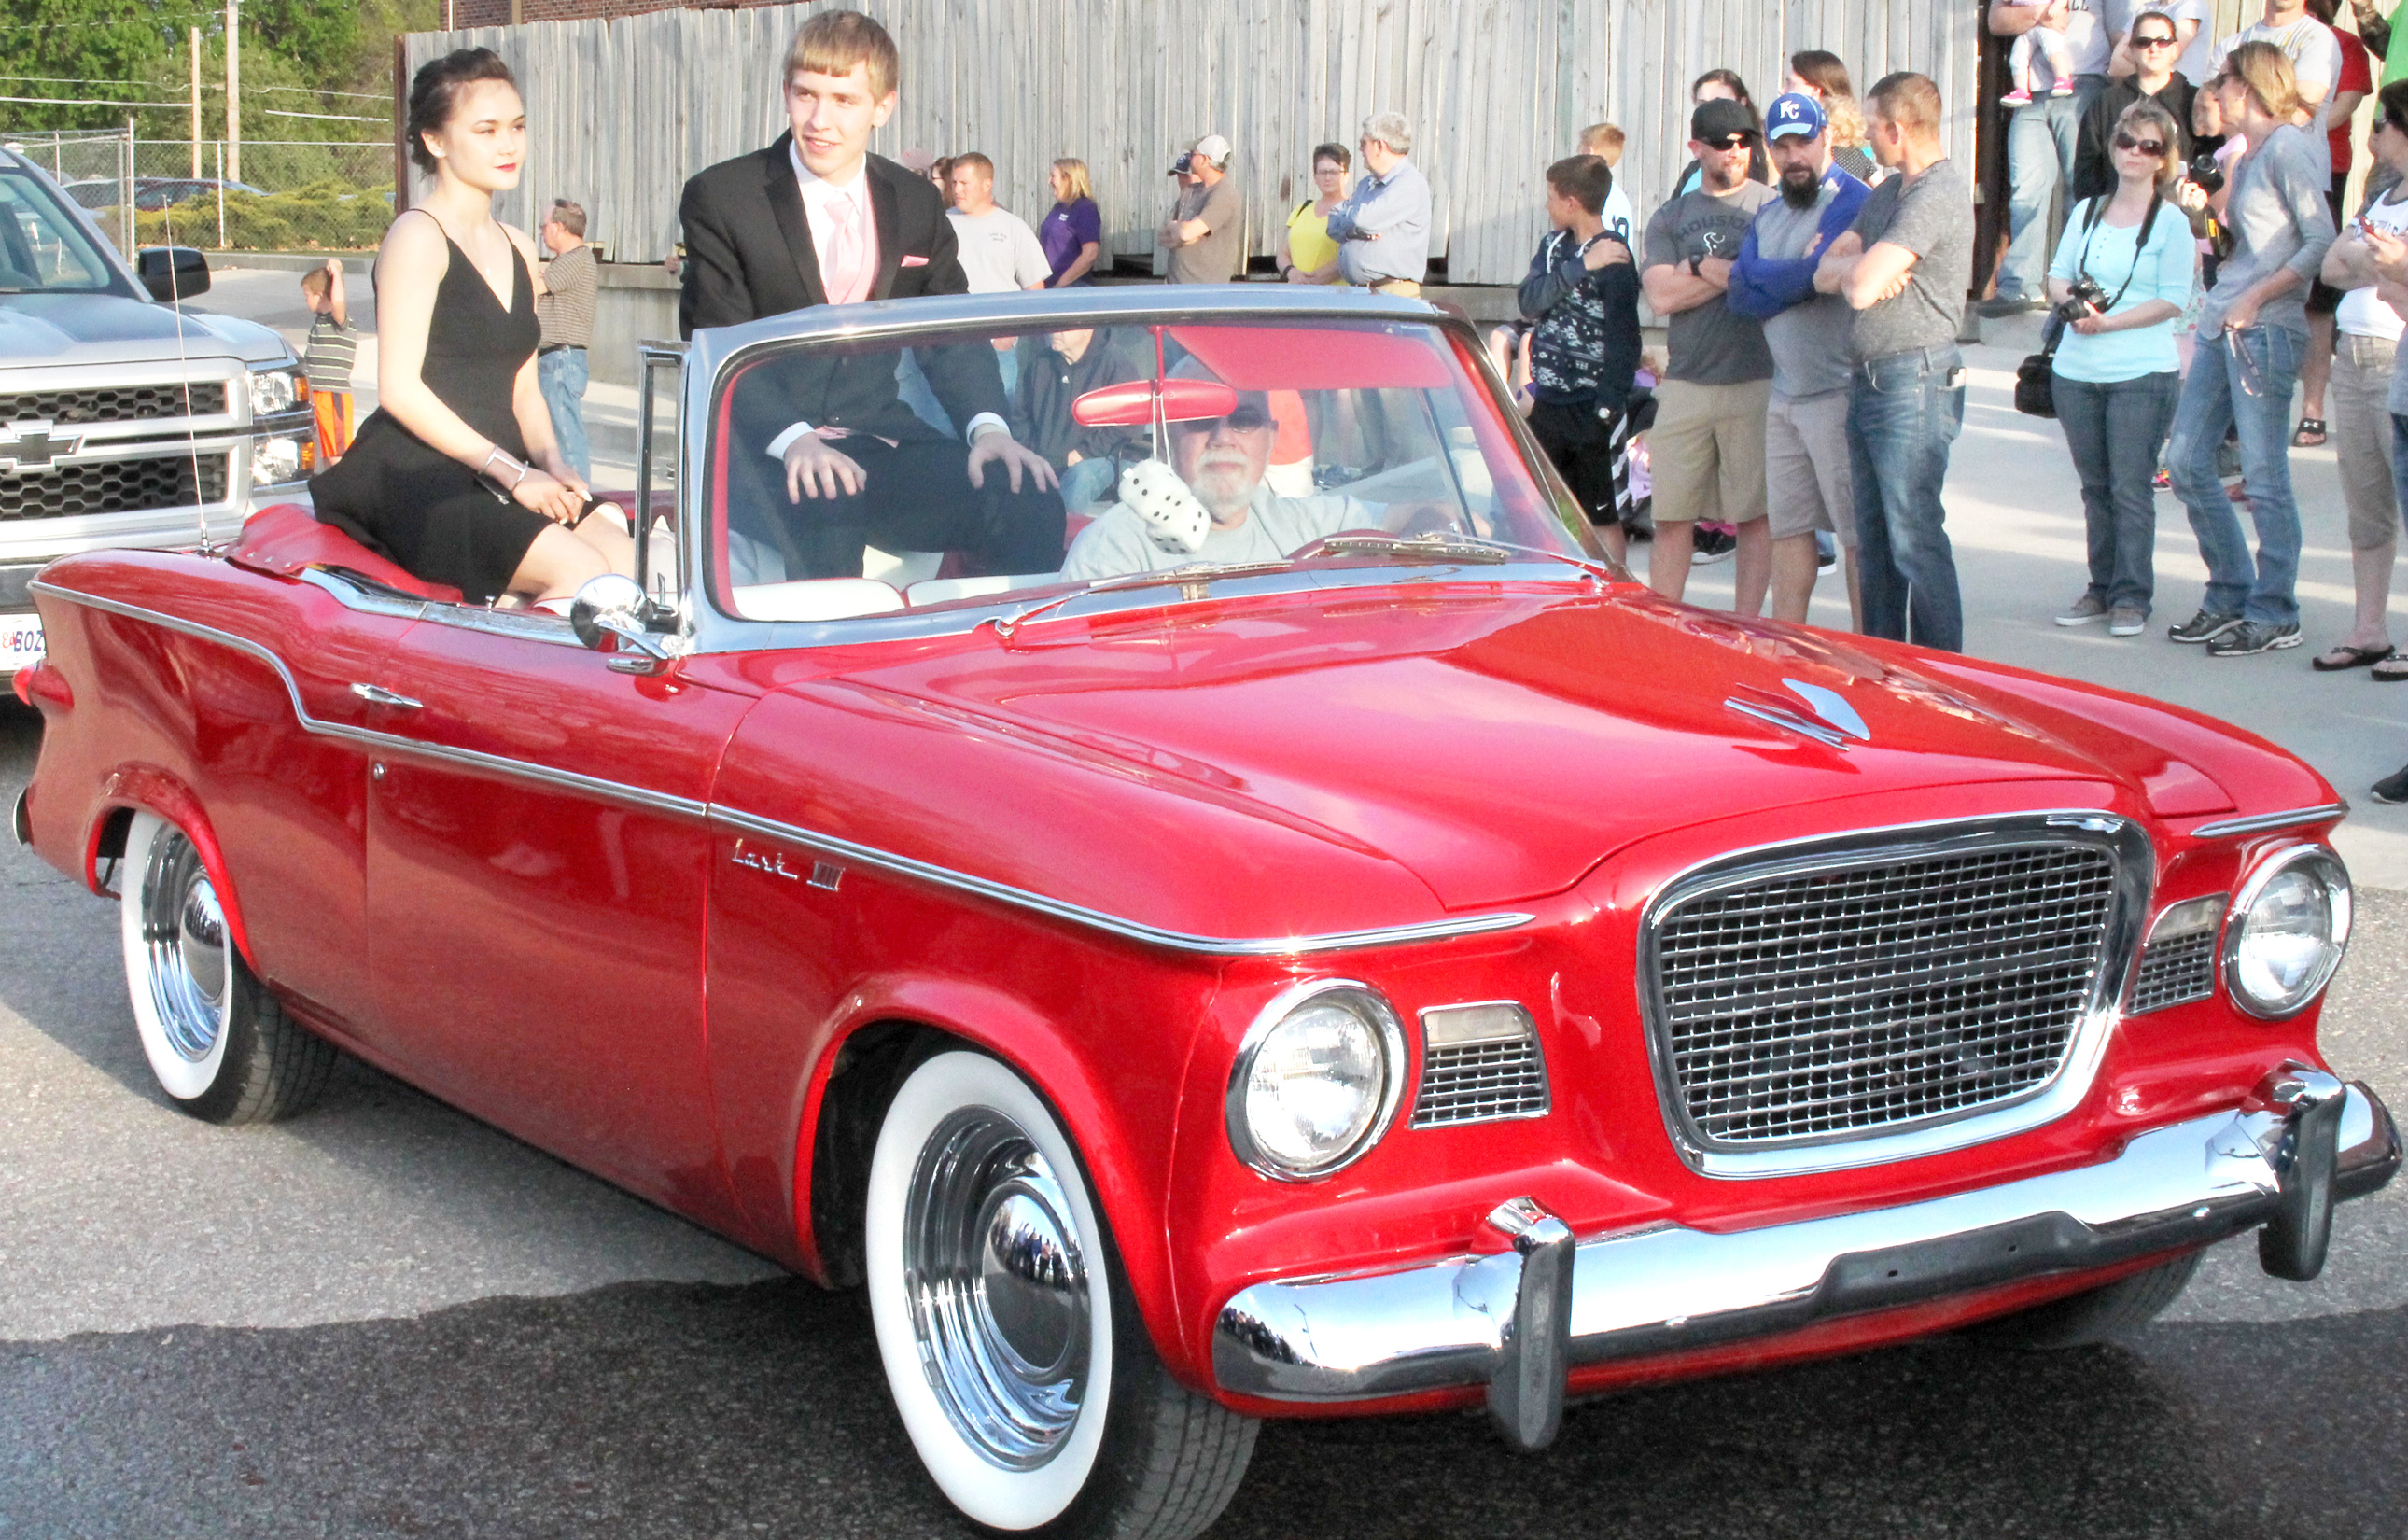 Holton High School seniors Abigail Heitzman (left) and Joel Cawby (center) rode to Saturday's HHS prom in the back of a Lark VIII convertible driven by Scott Bartlett while a crowd of family members and friends looked on. (Photo by Brian Sanders)